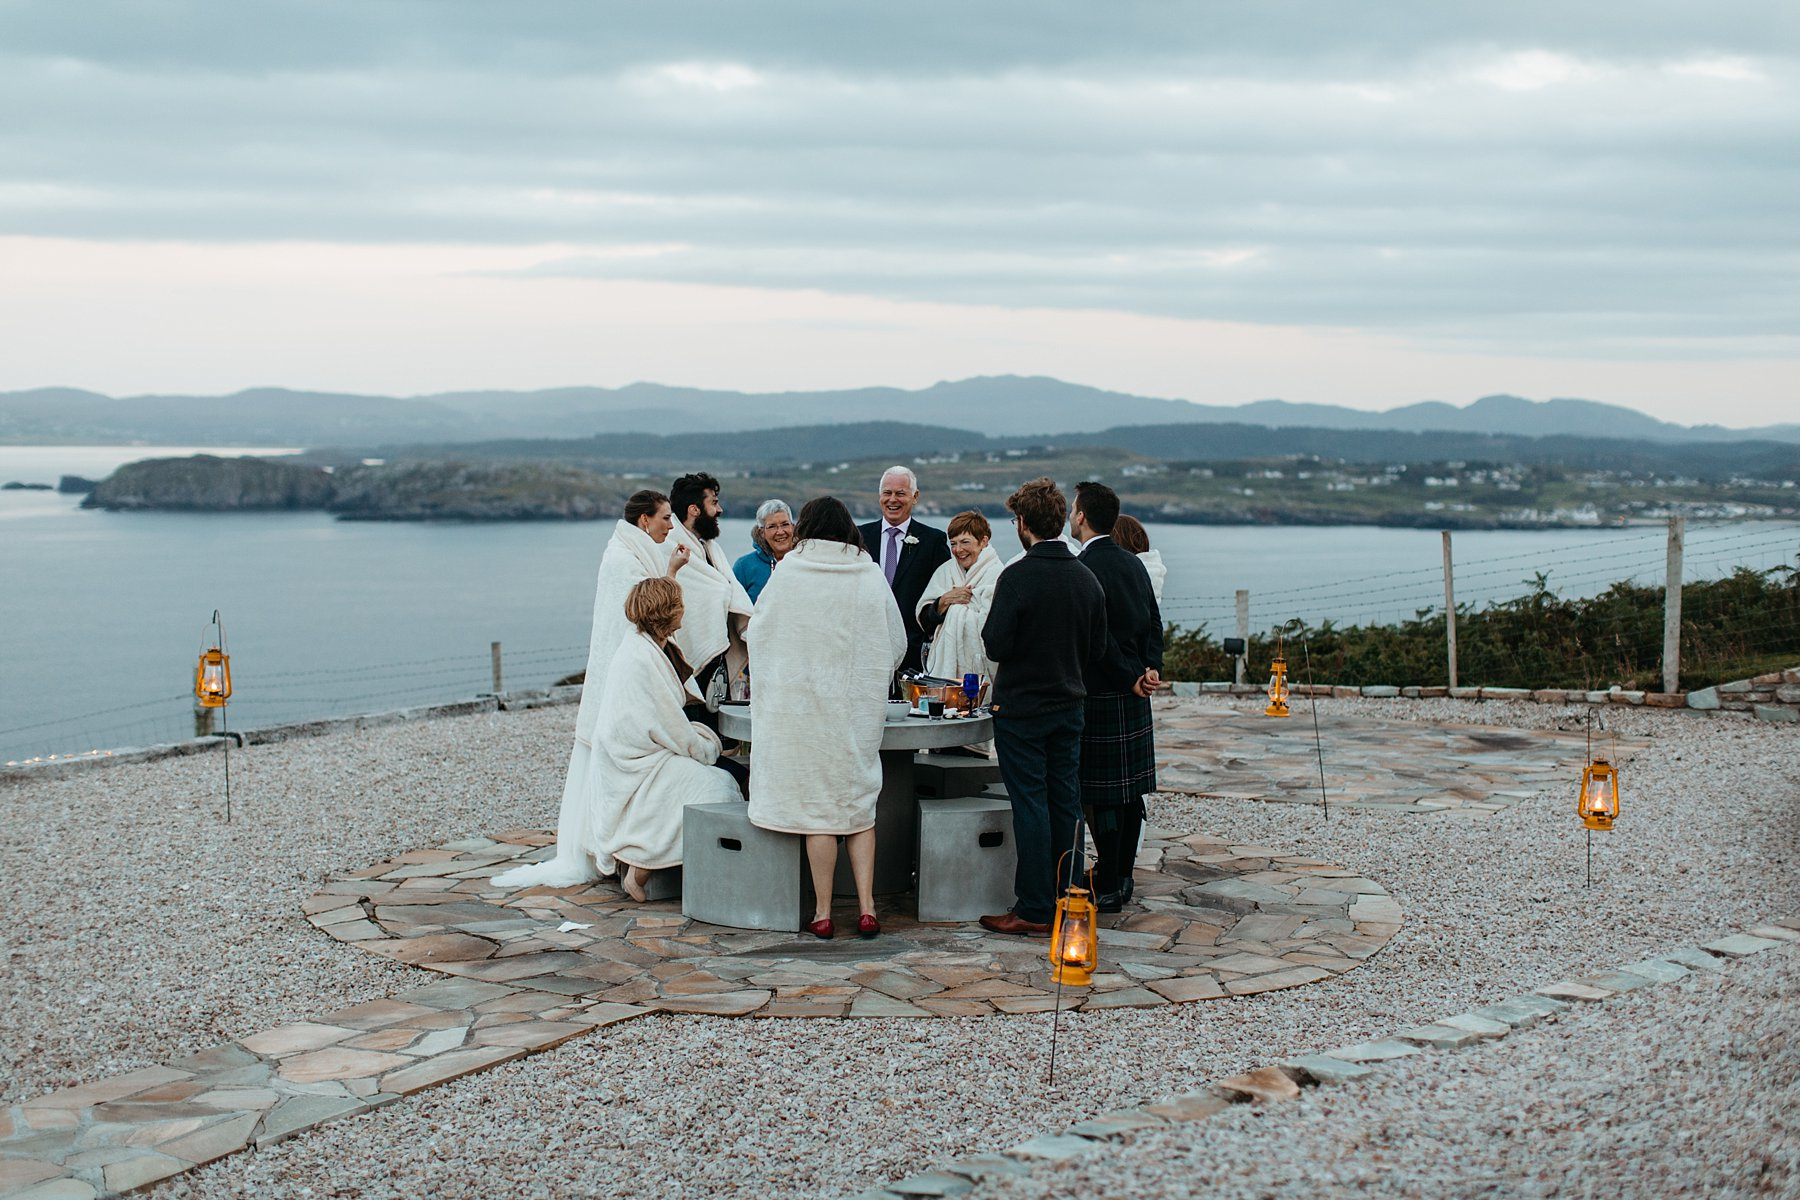 hornhead_donegak_elopement_weddings_0094